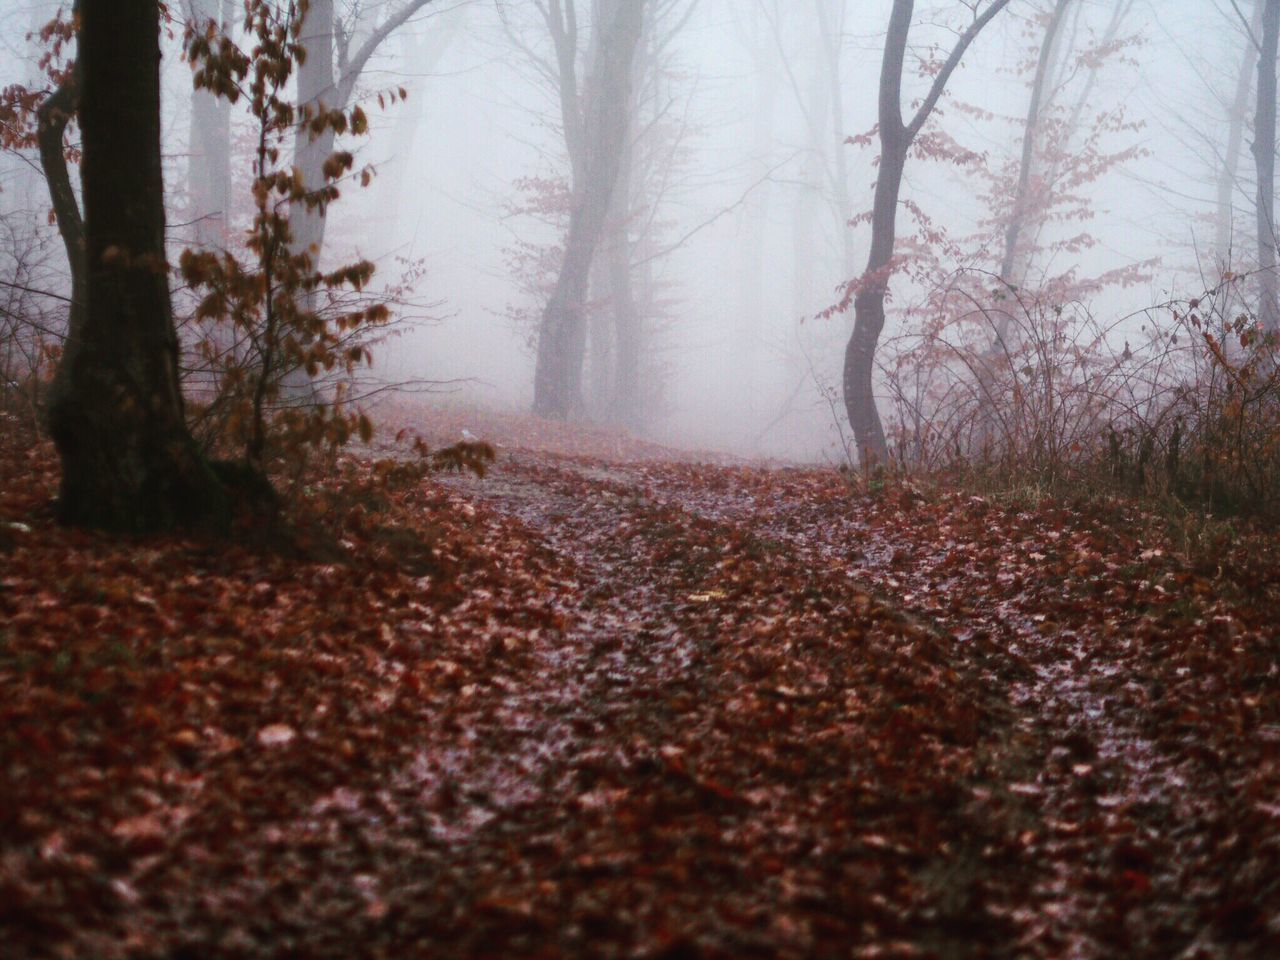 Forest Nature Tree Fog Tree Trunk Autumn Winter Landscape Outdoors Beauty In Nature Scenics Tranquility Single Lane Road Day No People